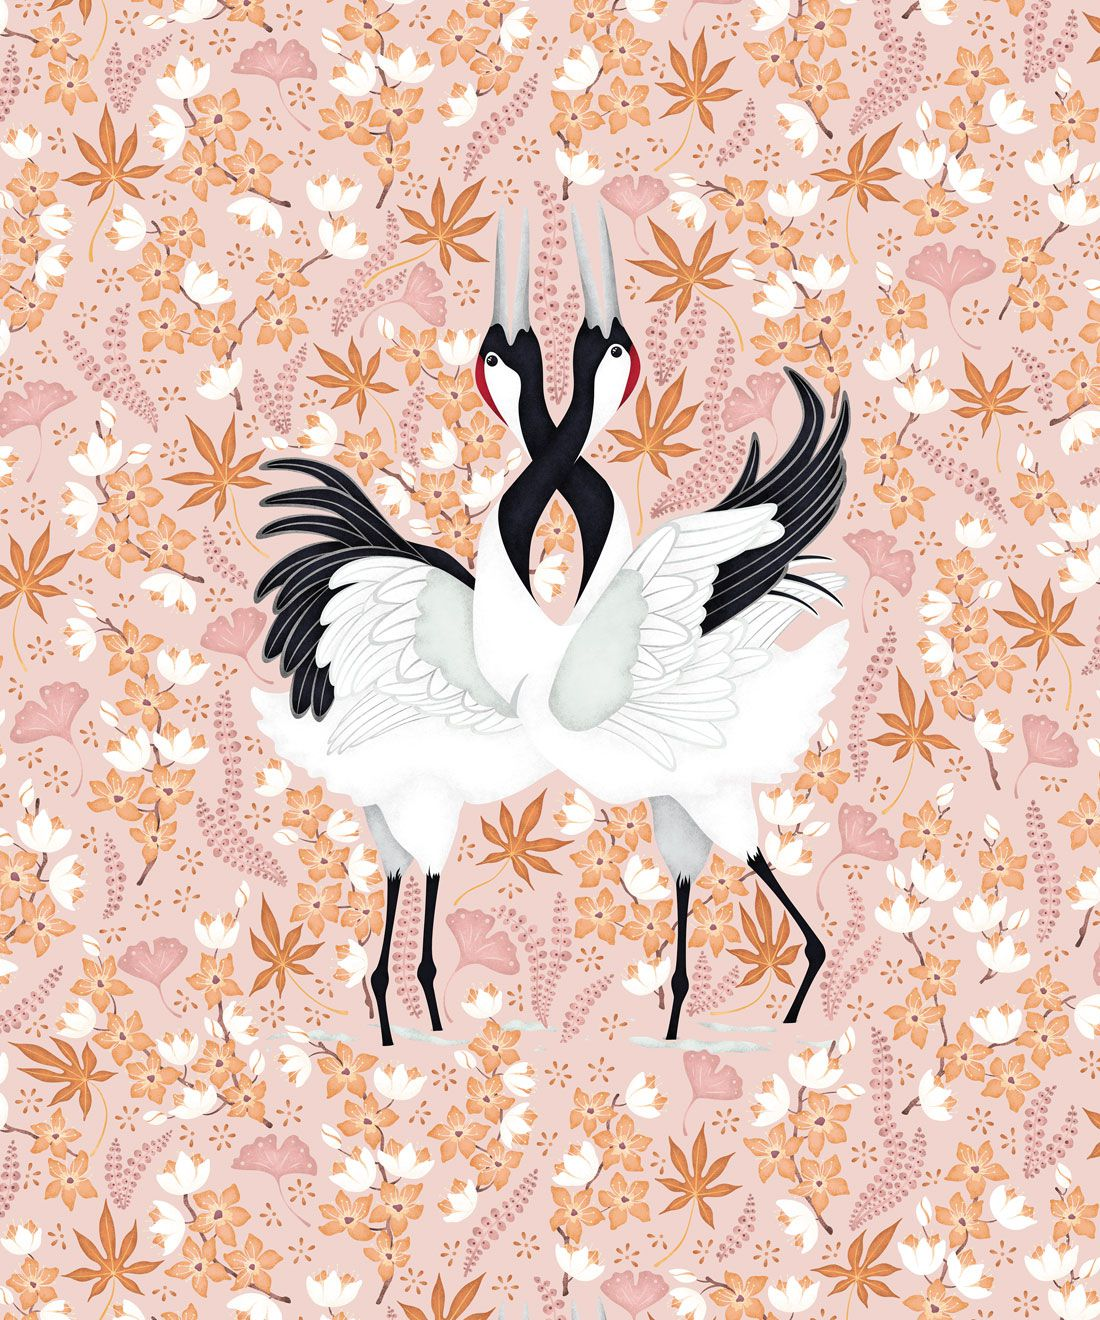 Japanese Cranes Wallpaper • Bird Wallpaper • Pink Wallpaper